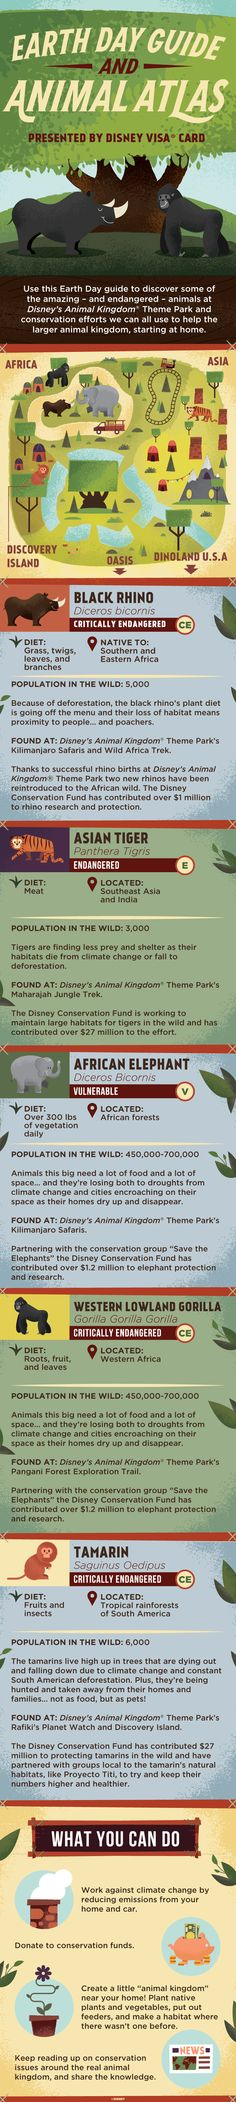 Disney's Animal Kingdom® Theme Park is more than just an exotic collection of Earth's coolest  animals... it's a helpful habitat for some of the  most endangered creatures, too. As climate  change affects species all over the world every day, it's more important than ever to make every day Earth Day. With this Animal Atlas, you can meet some animals in need, find out how Disney's Animal Kingdom® Theme Park makes a difference,and start a conservation conversation at home!